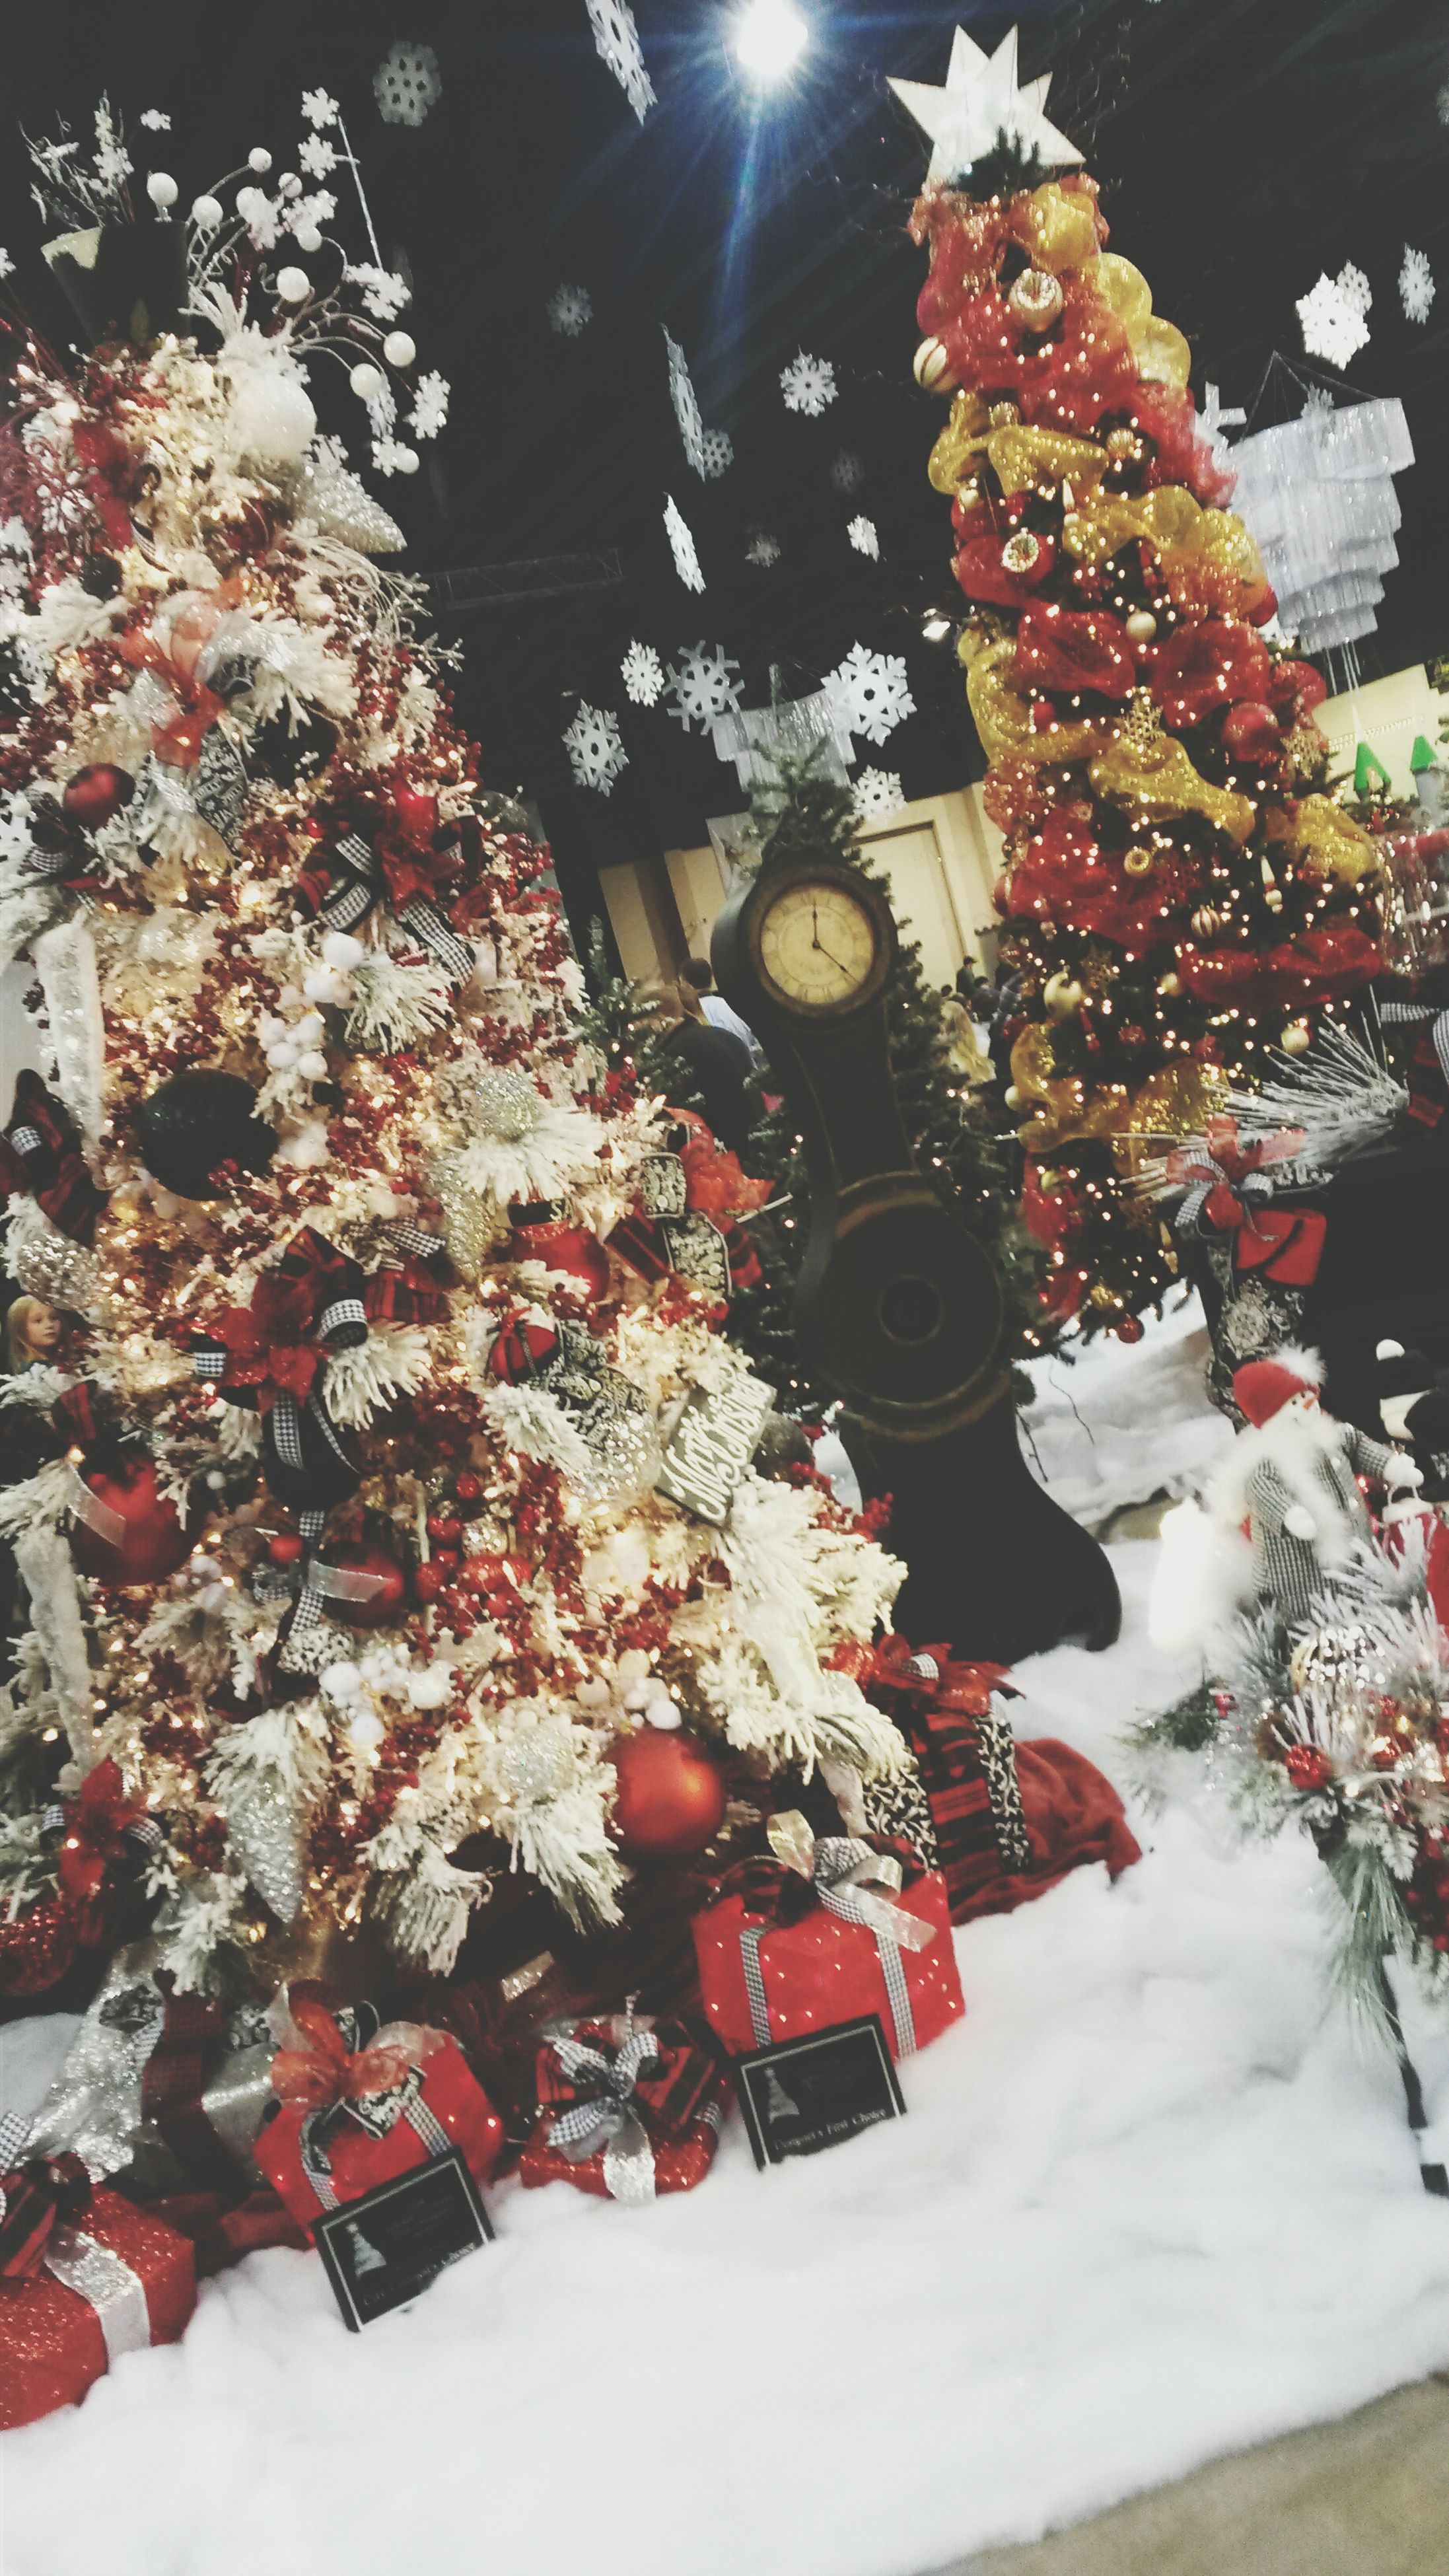 decoration, hanging, christmas, celebration, flower, tradition, indoors, lighting equipment, religion, red, illuminated, cultures, no people, christmas decoration, table, white color, christmas tree, lantern, tree, spirituality